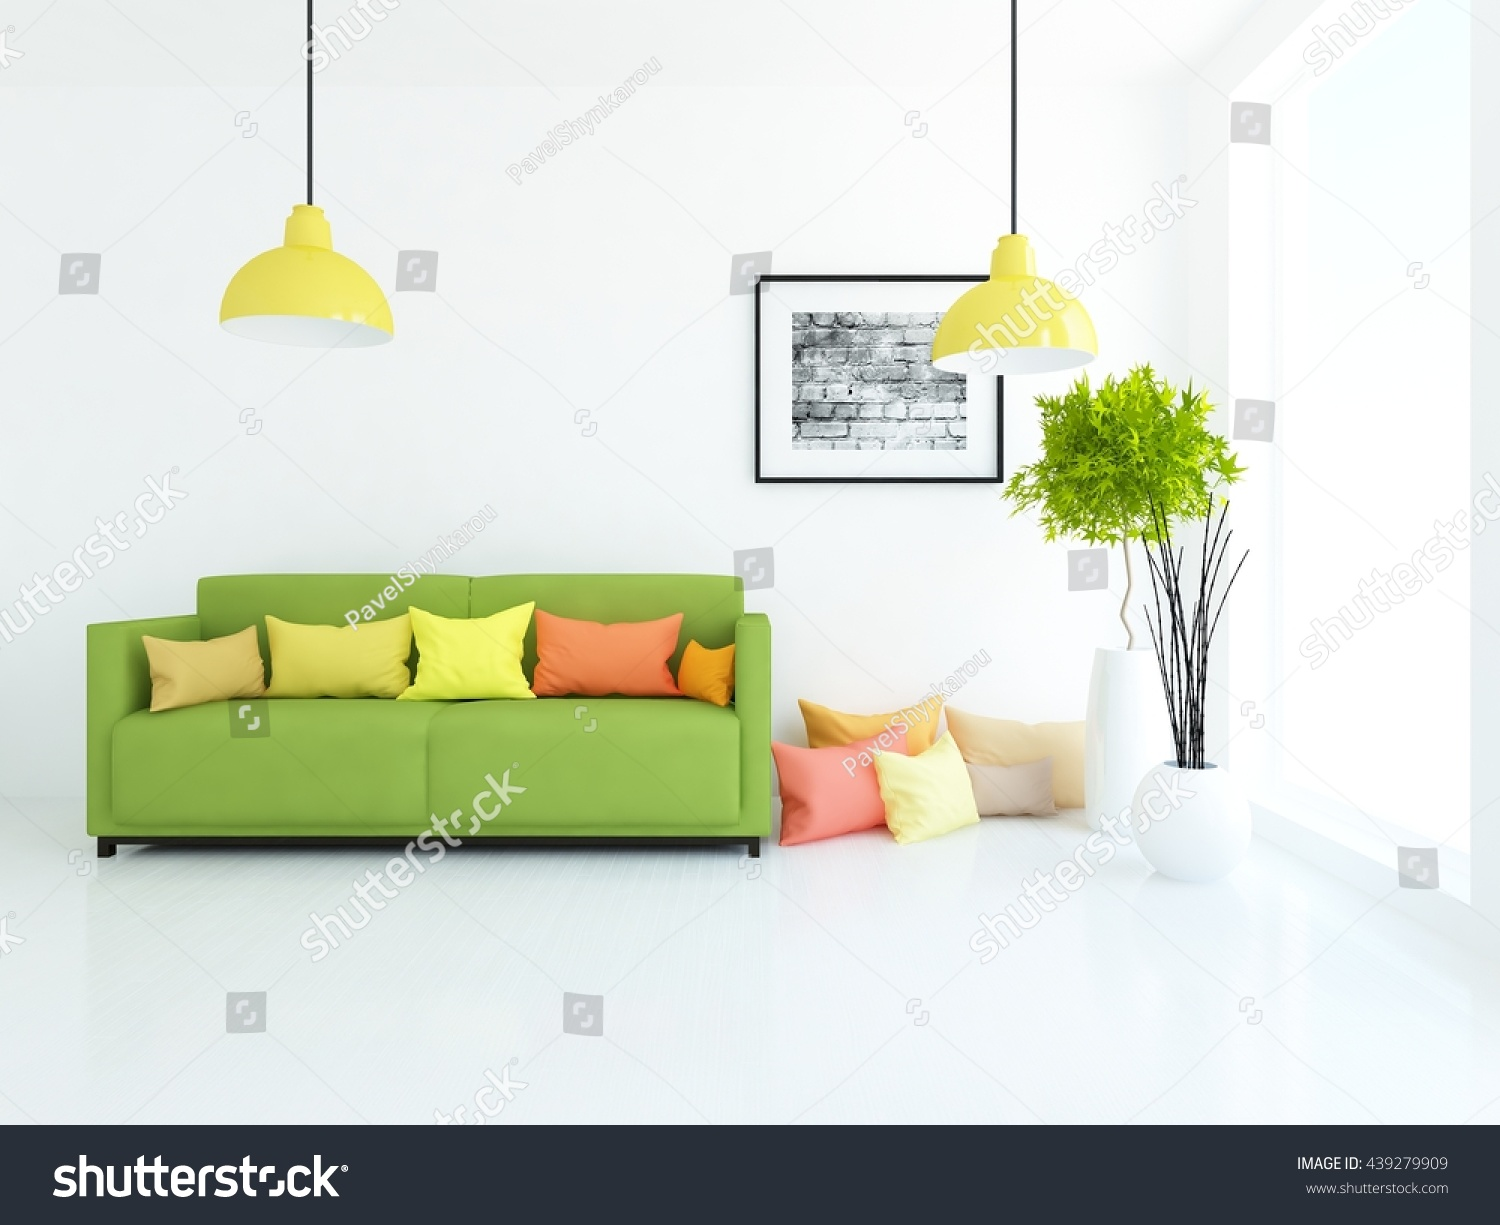 White room green sofa living room stock illustration for Living room with green sofa